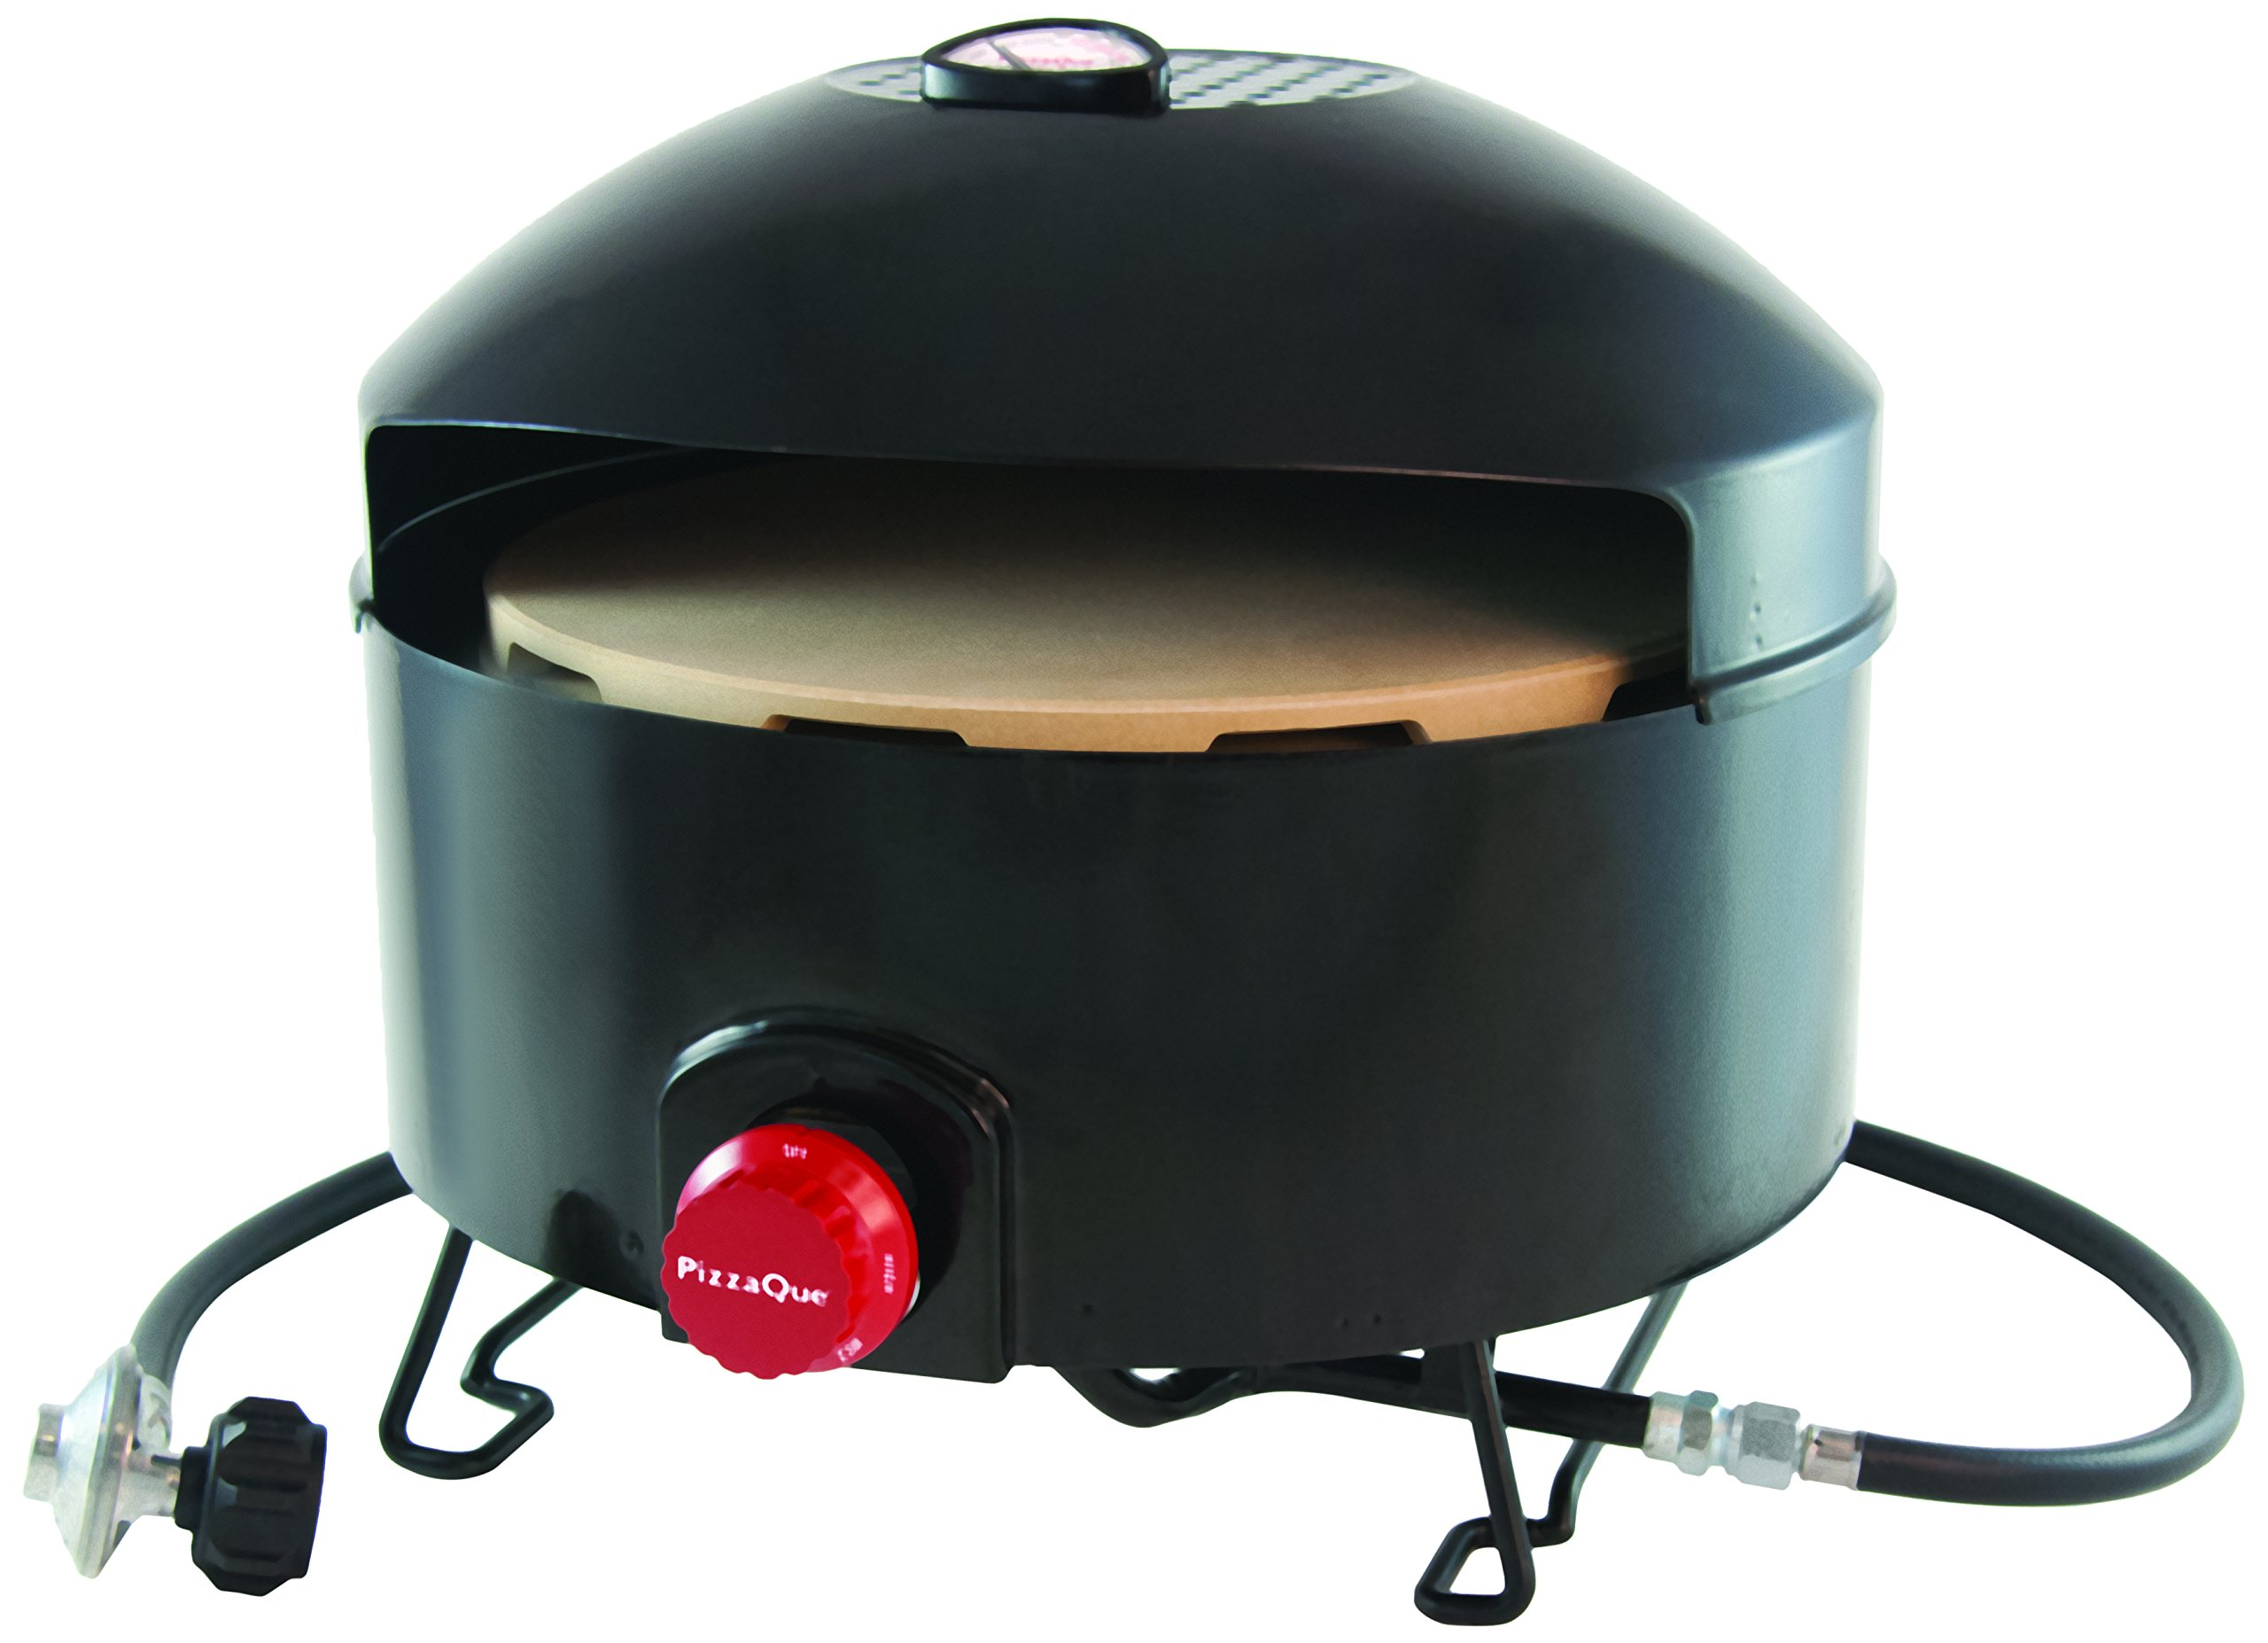 Pizzacraft PC6500 PizzaQue Portable Outdoor Pizza Oven by Pizzacraft